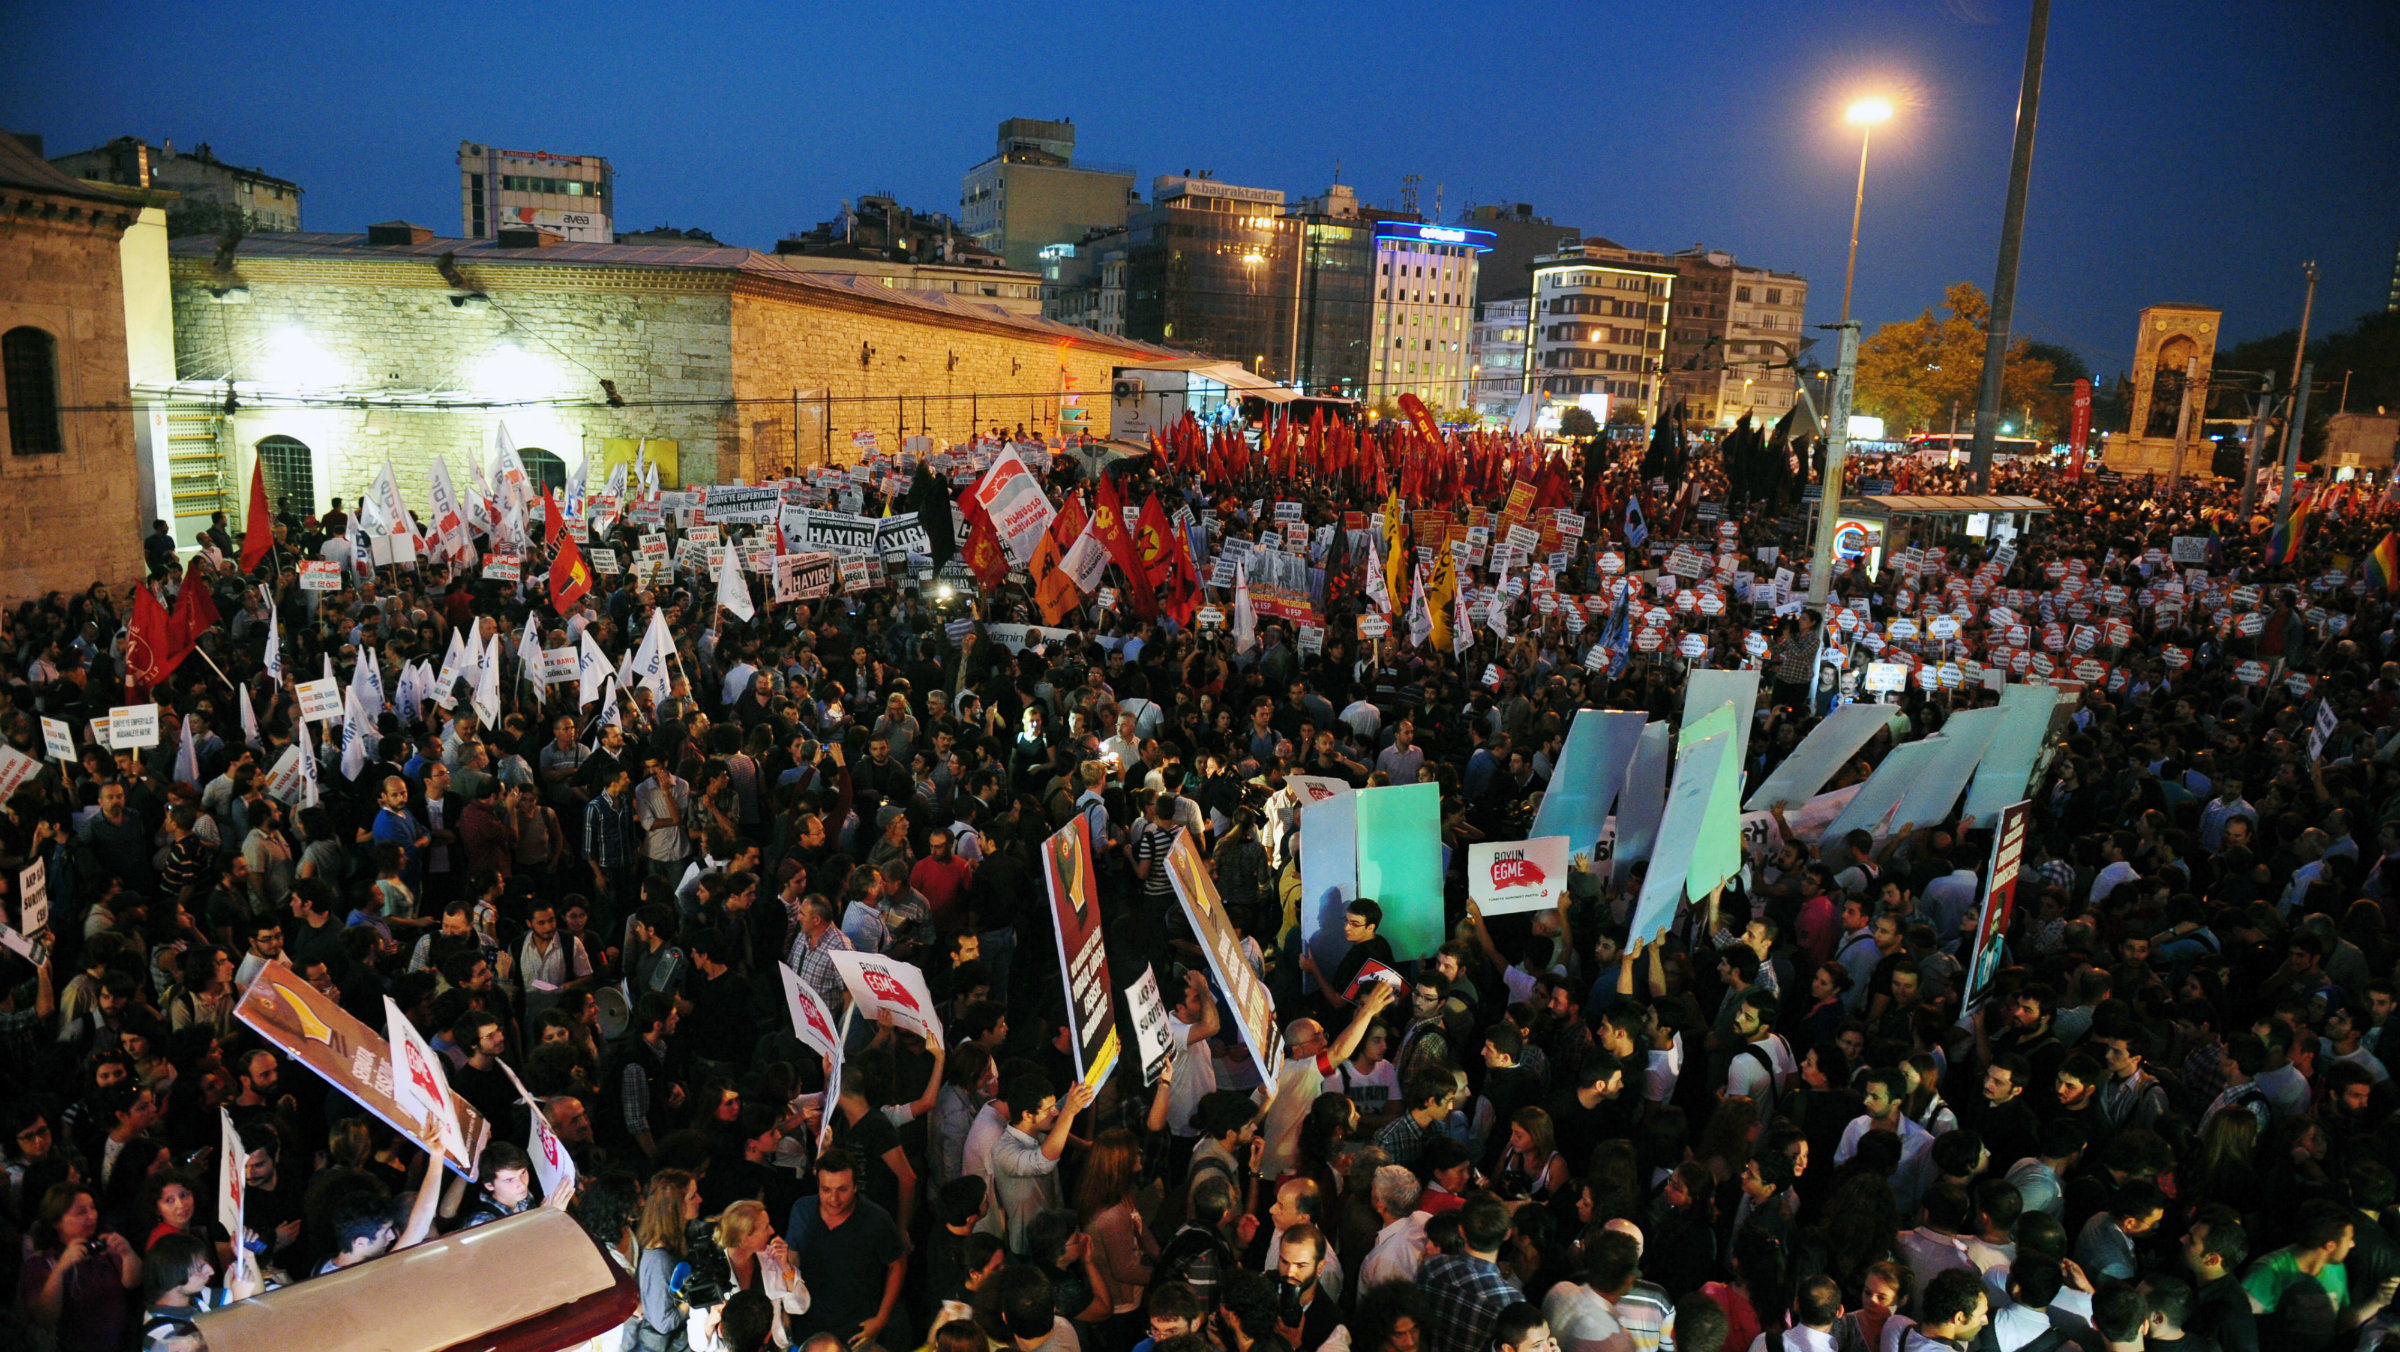 After deadly shelling on the Syria-Turkey border, protesters demonstrate against war.